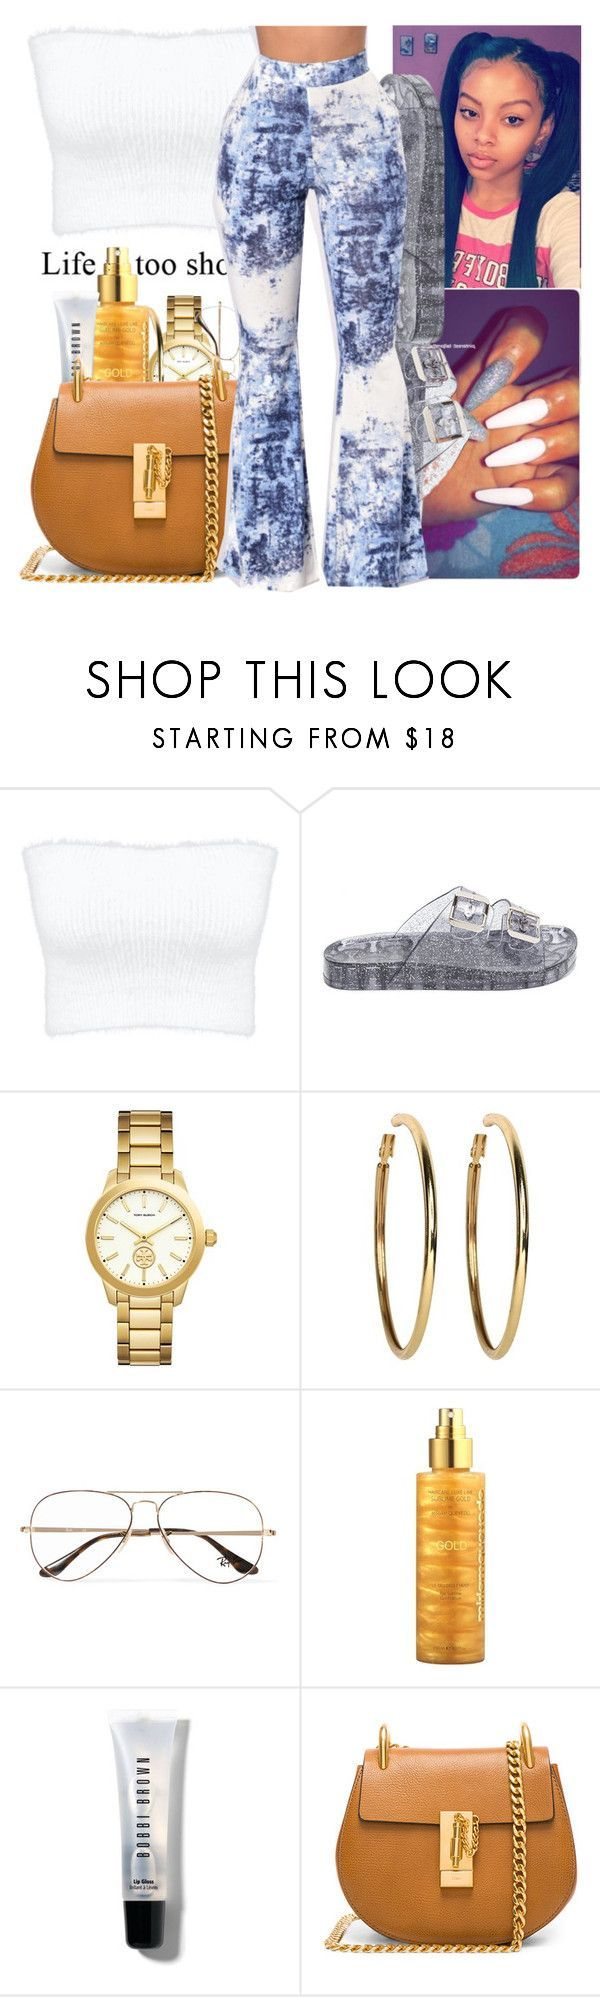 """""""Cardi B"""" by littydee ❤ liked on Polyvore featuring GLITTER JELLY, Versace, Kenneth Jay Lane, Ray-Ban, Miriam Quevedo, Bobbi Brown Cosmetics and Chloé #schooloutfits"""